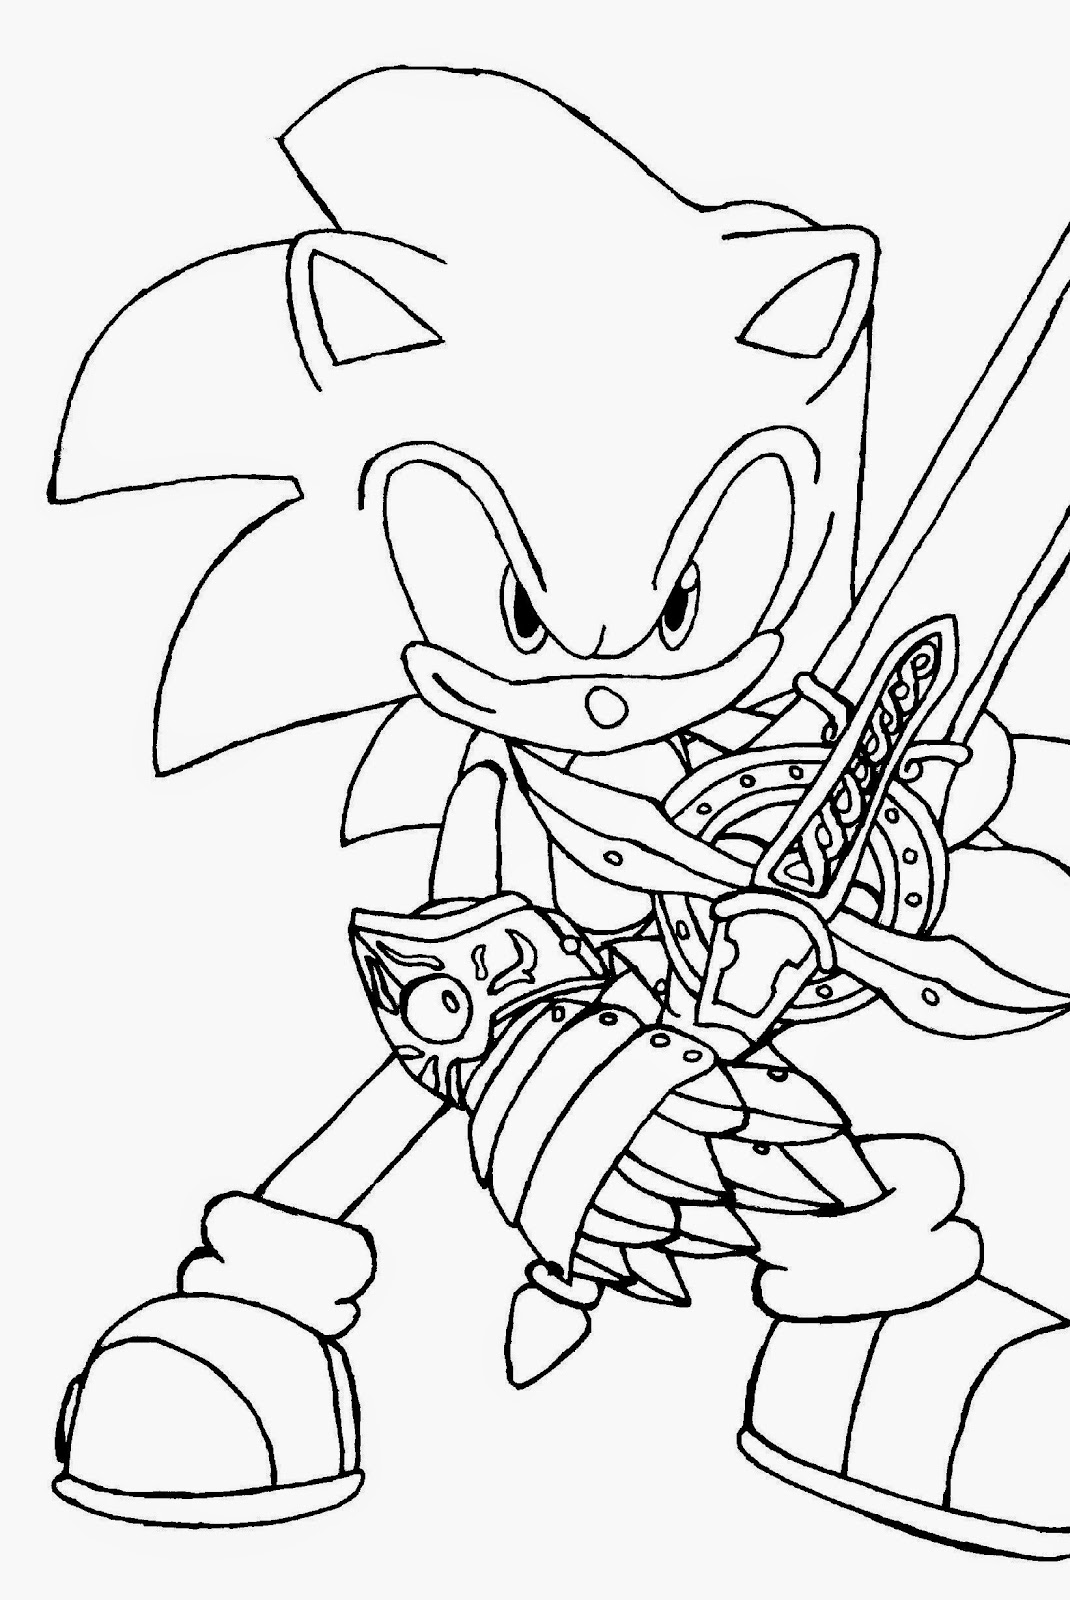 coloring pages : Sonic The Hedgehog Printable Coloring Sheets ... | 1600x1070